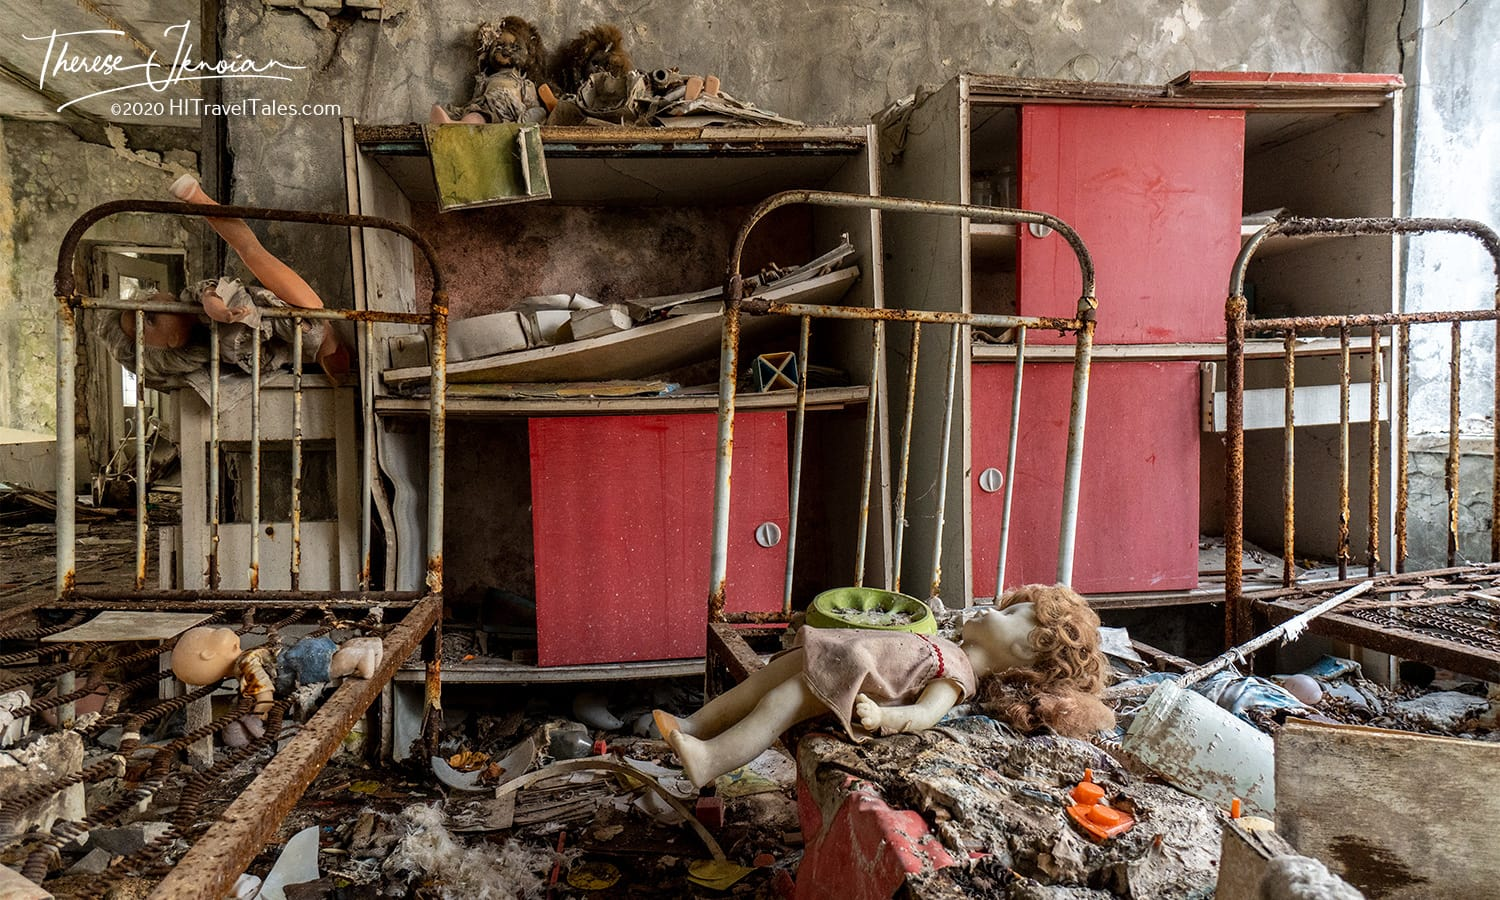 This is the image many think of when imagining what Chernobyl looks like today. A childcare center continues to disintegrate as you fully sense lives destroyed. Rusty beds are lined up in former nap rooms, with dolls and toys scattered about.